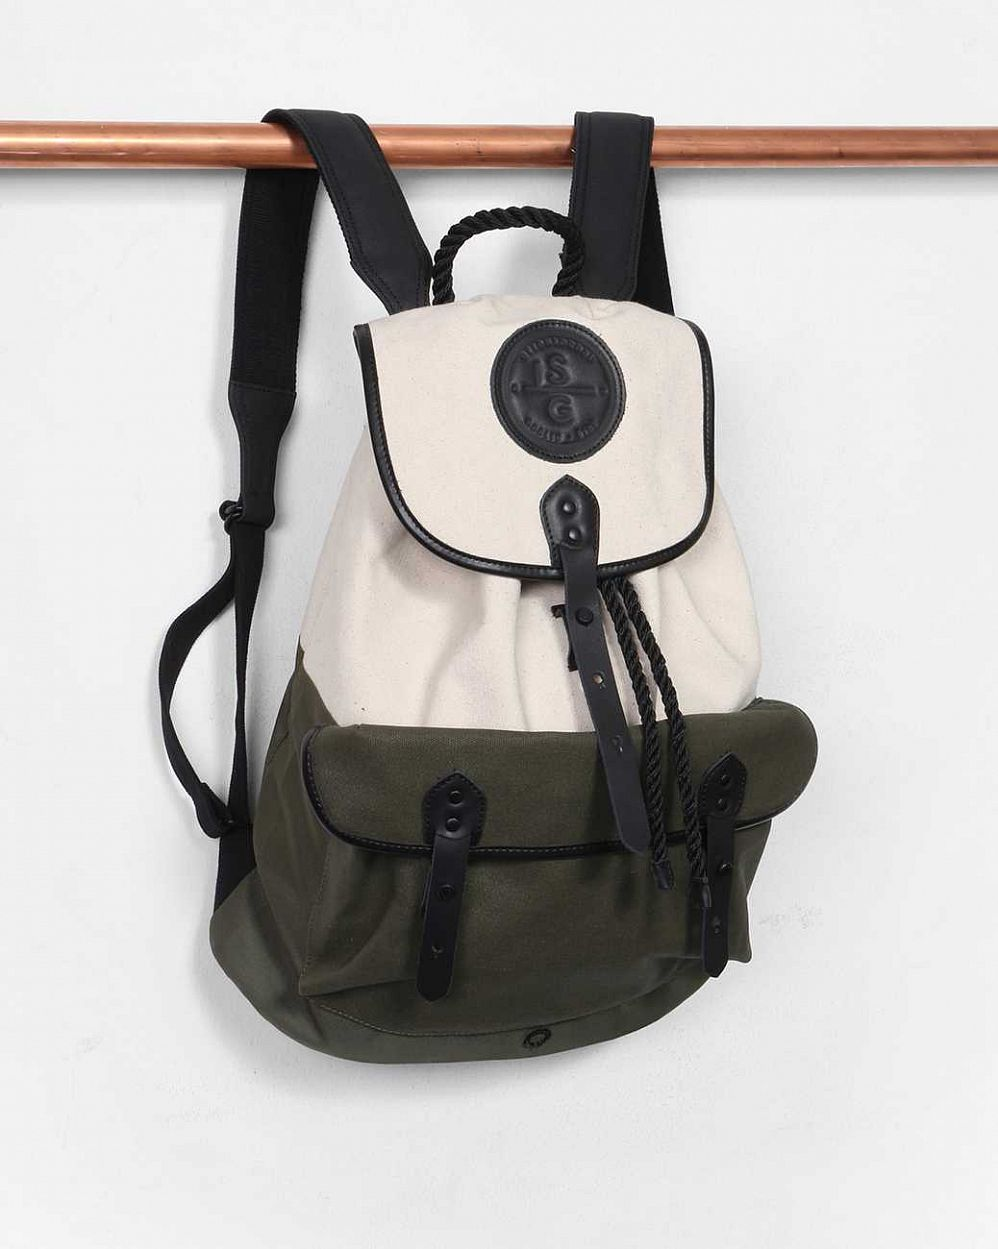 купить Рюкзак-мешок Stighlorgan Roban Drawstring Backpack Cotton Canvas Calico & Olive Green в Москве